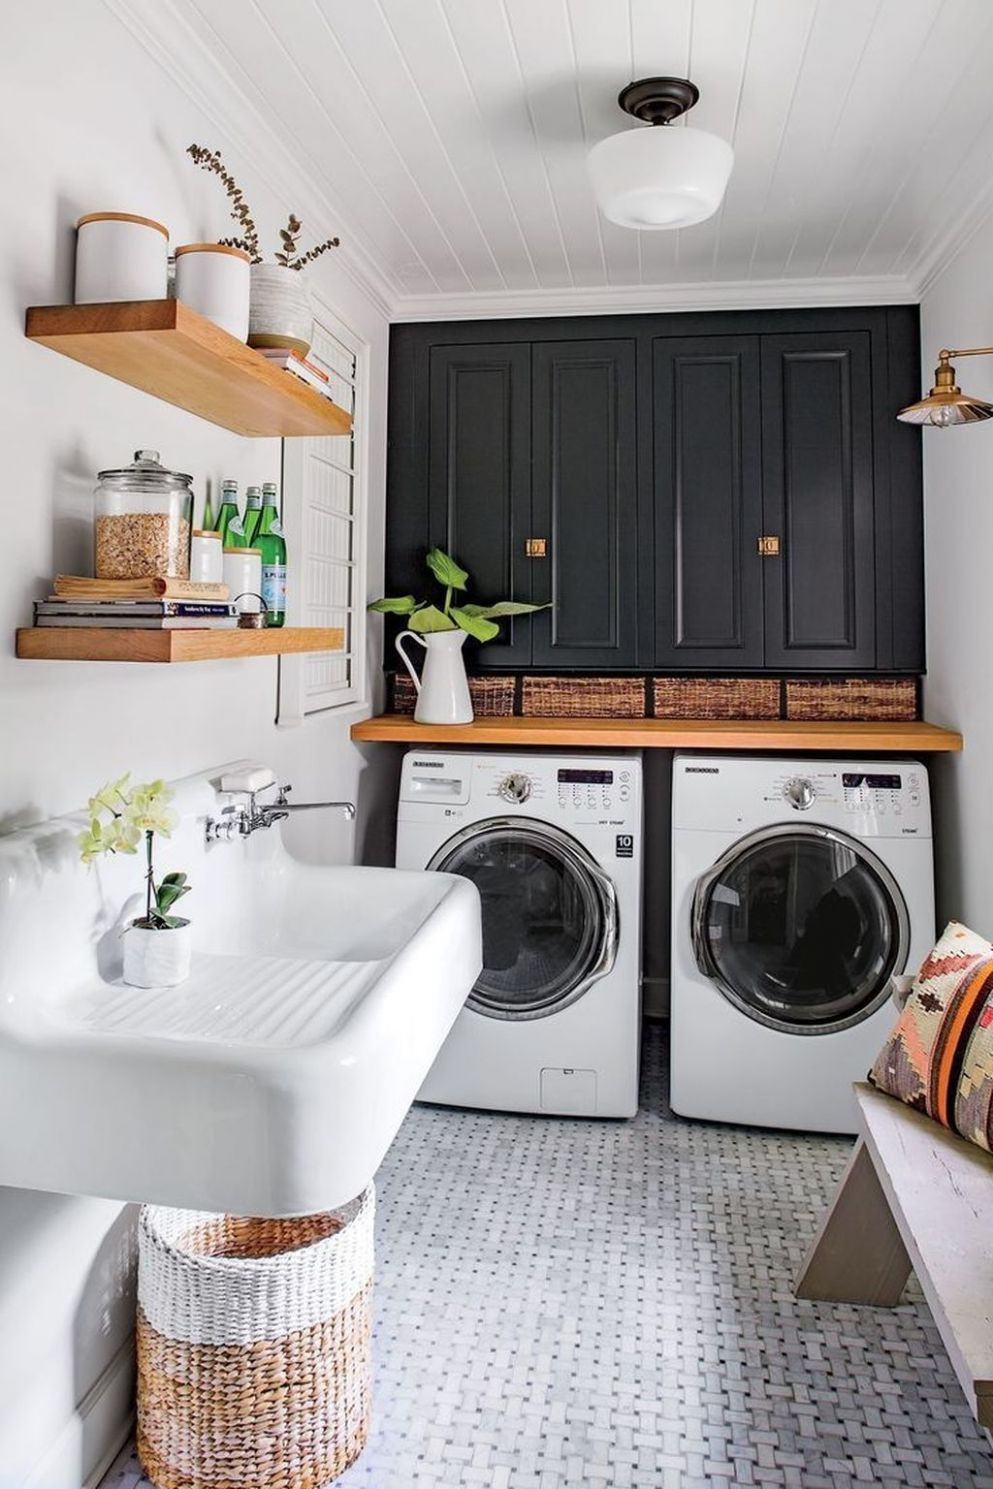 10+ Gorgeous Mudroom Ideas For Laundry Room | Mudroom ideen ..